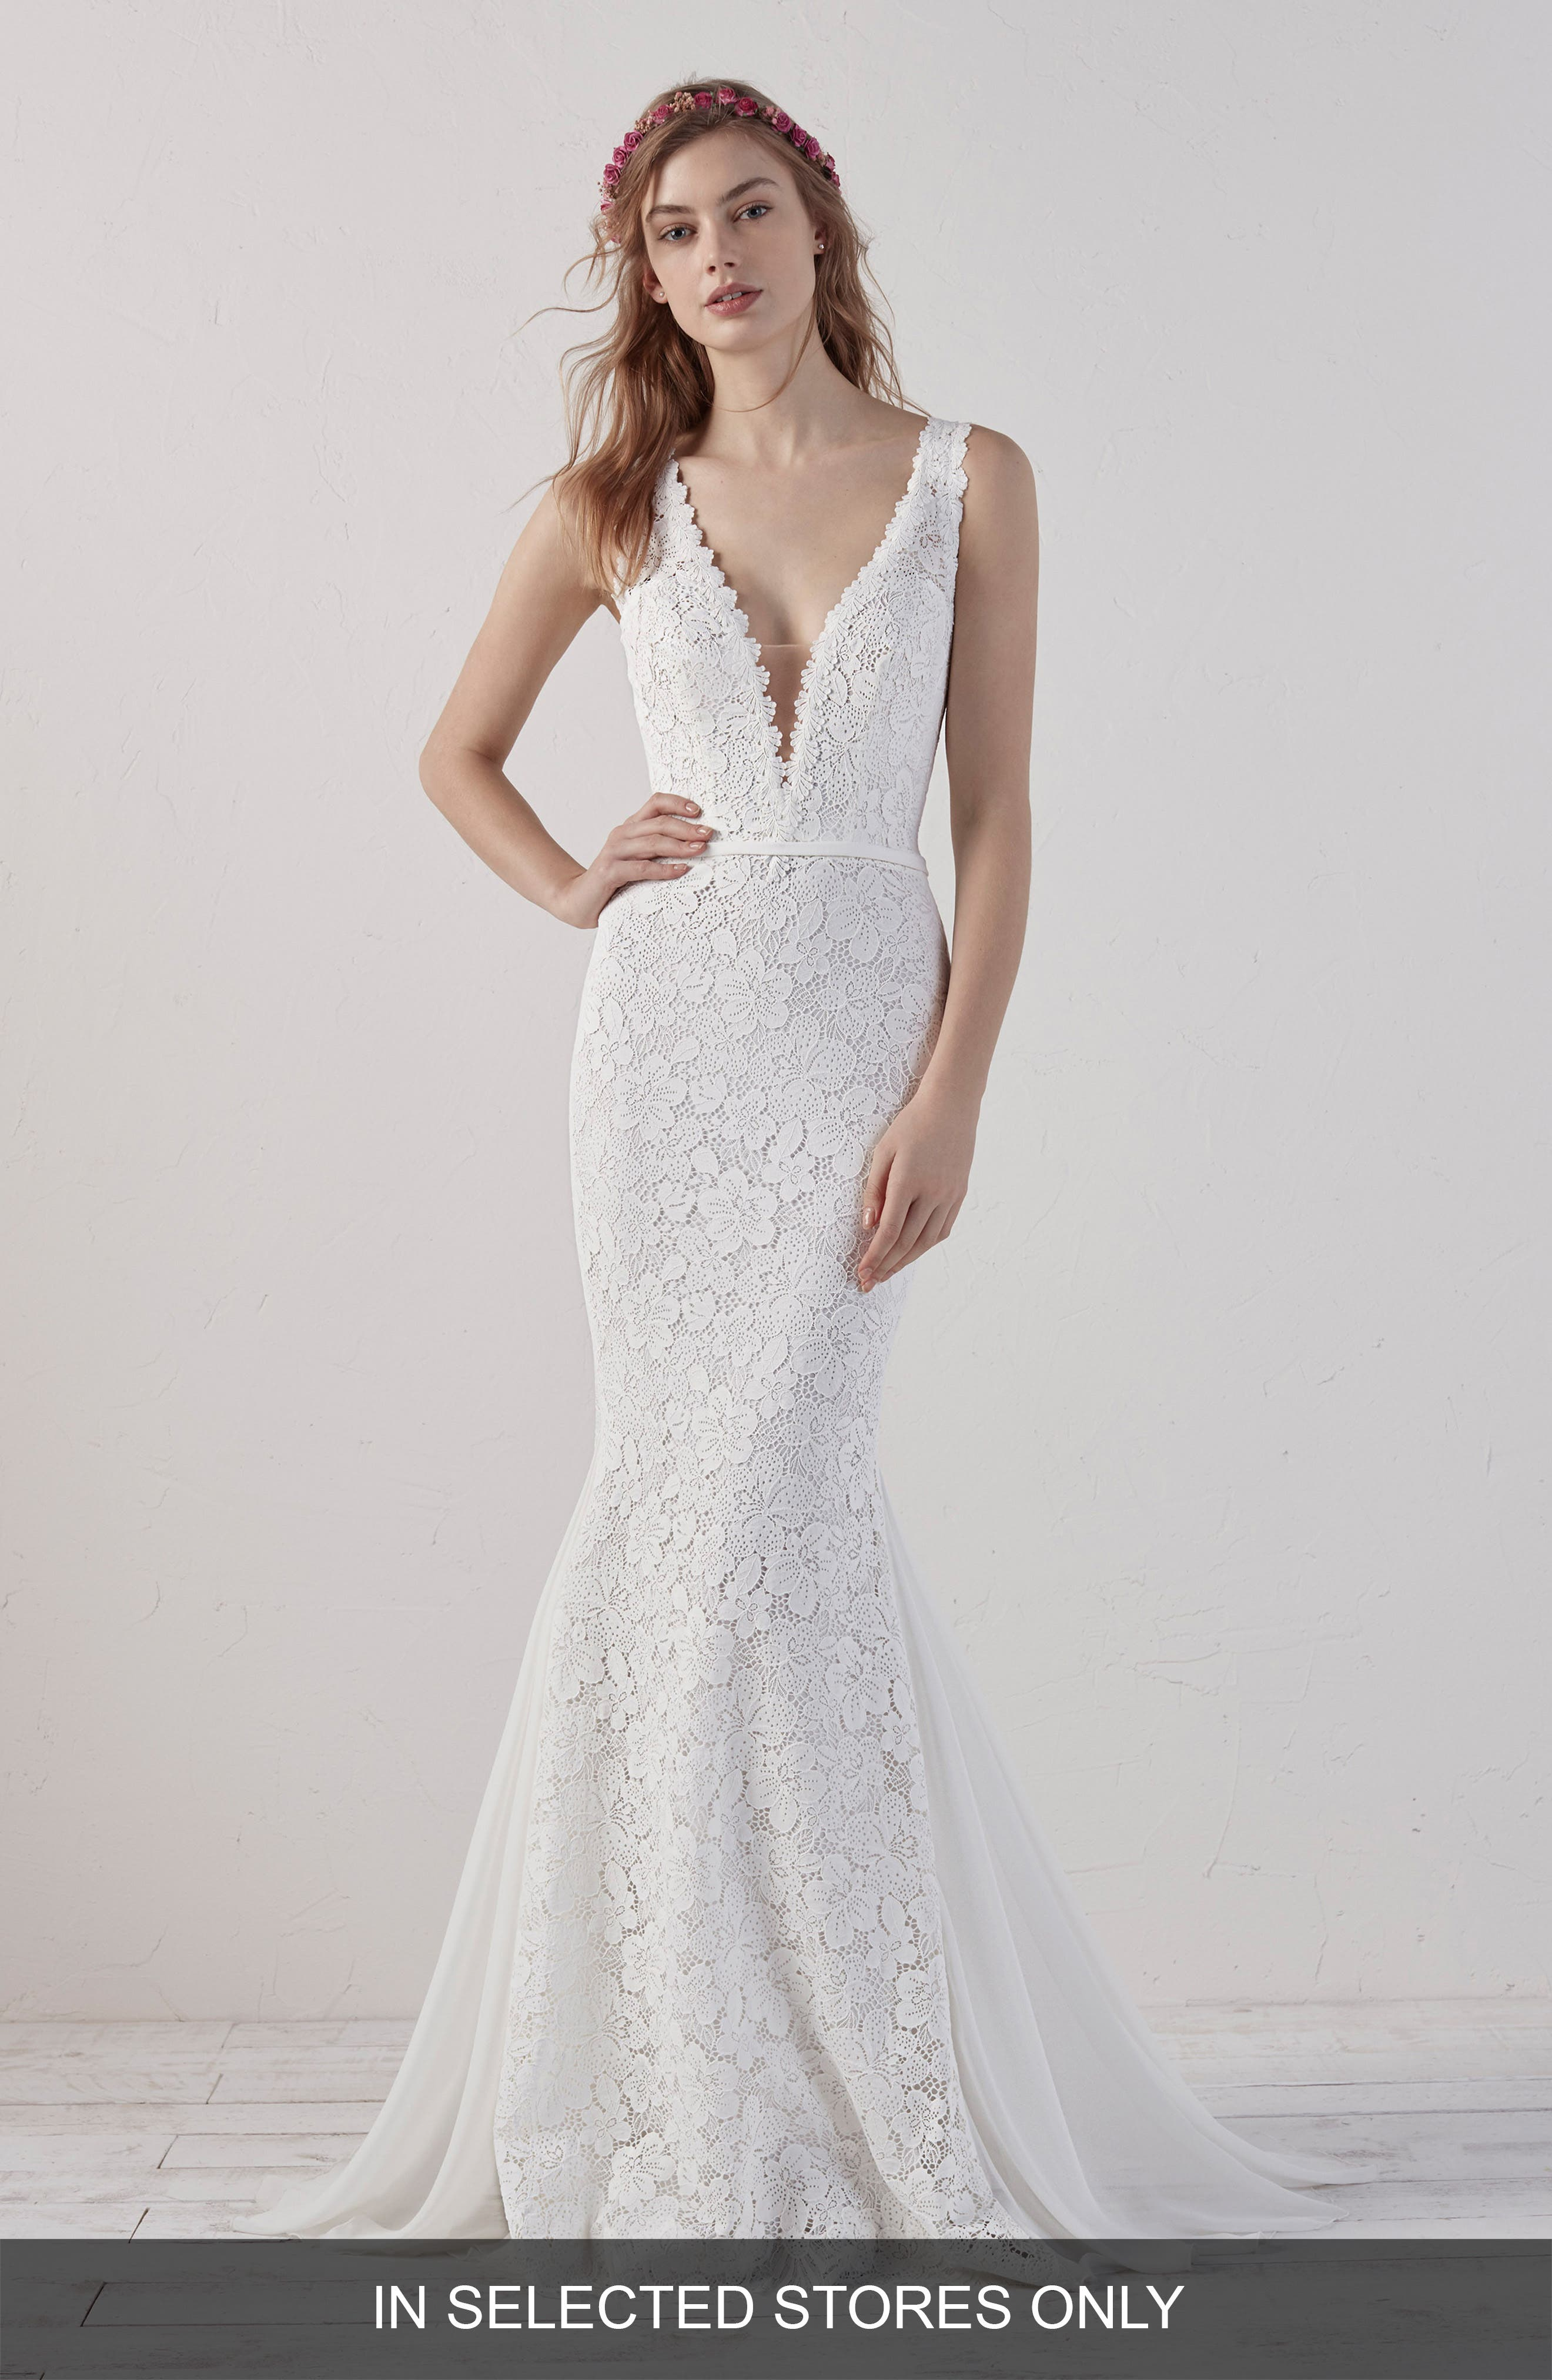 Eladia Lace Mermaid Gown,                         Main,                         color, OFF WHITE/ CRST